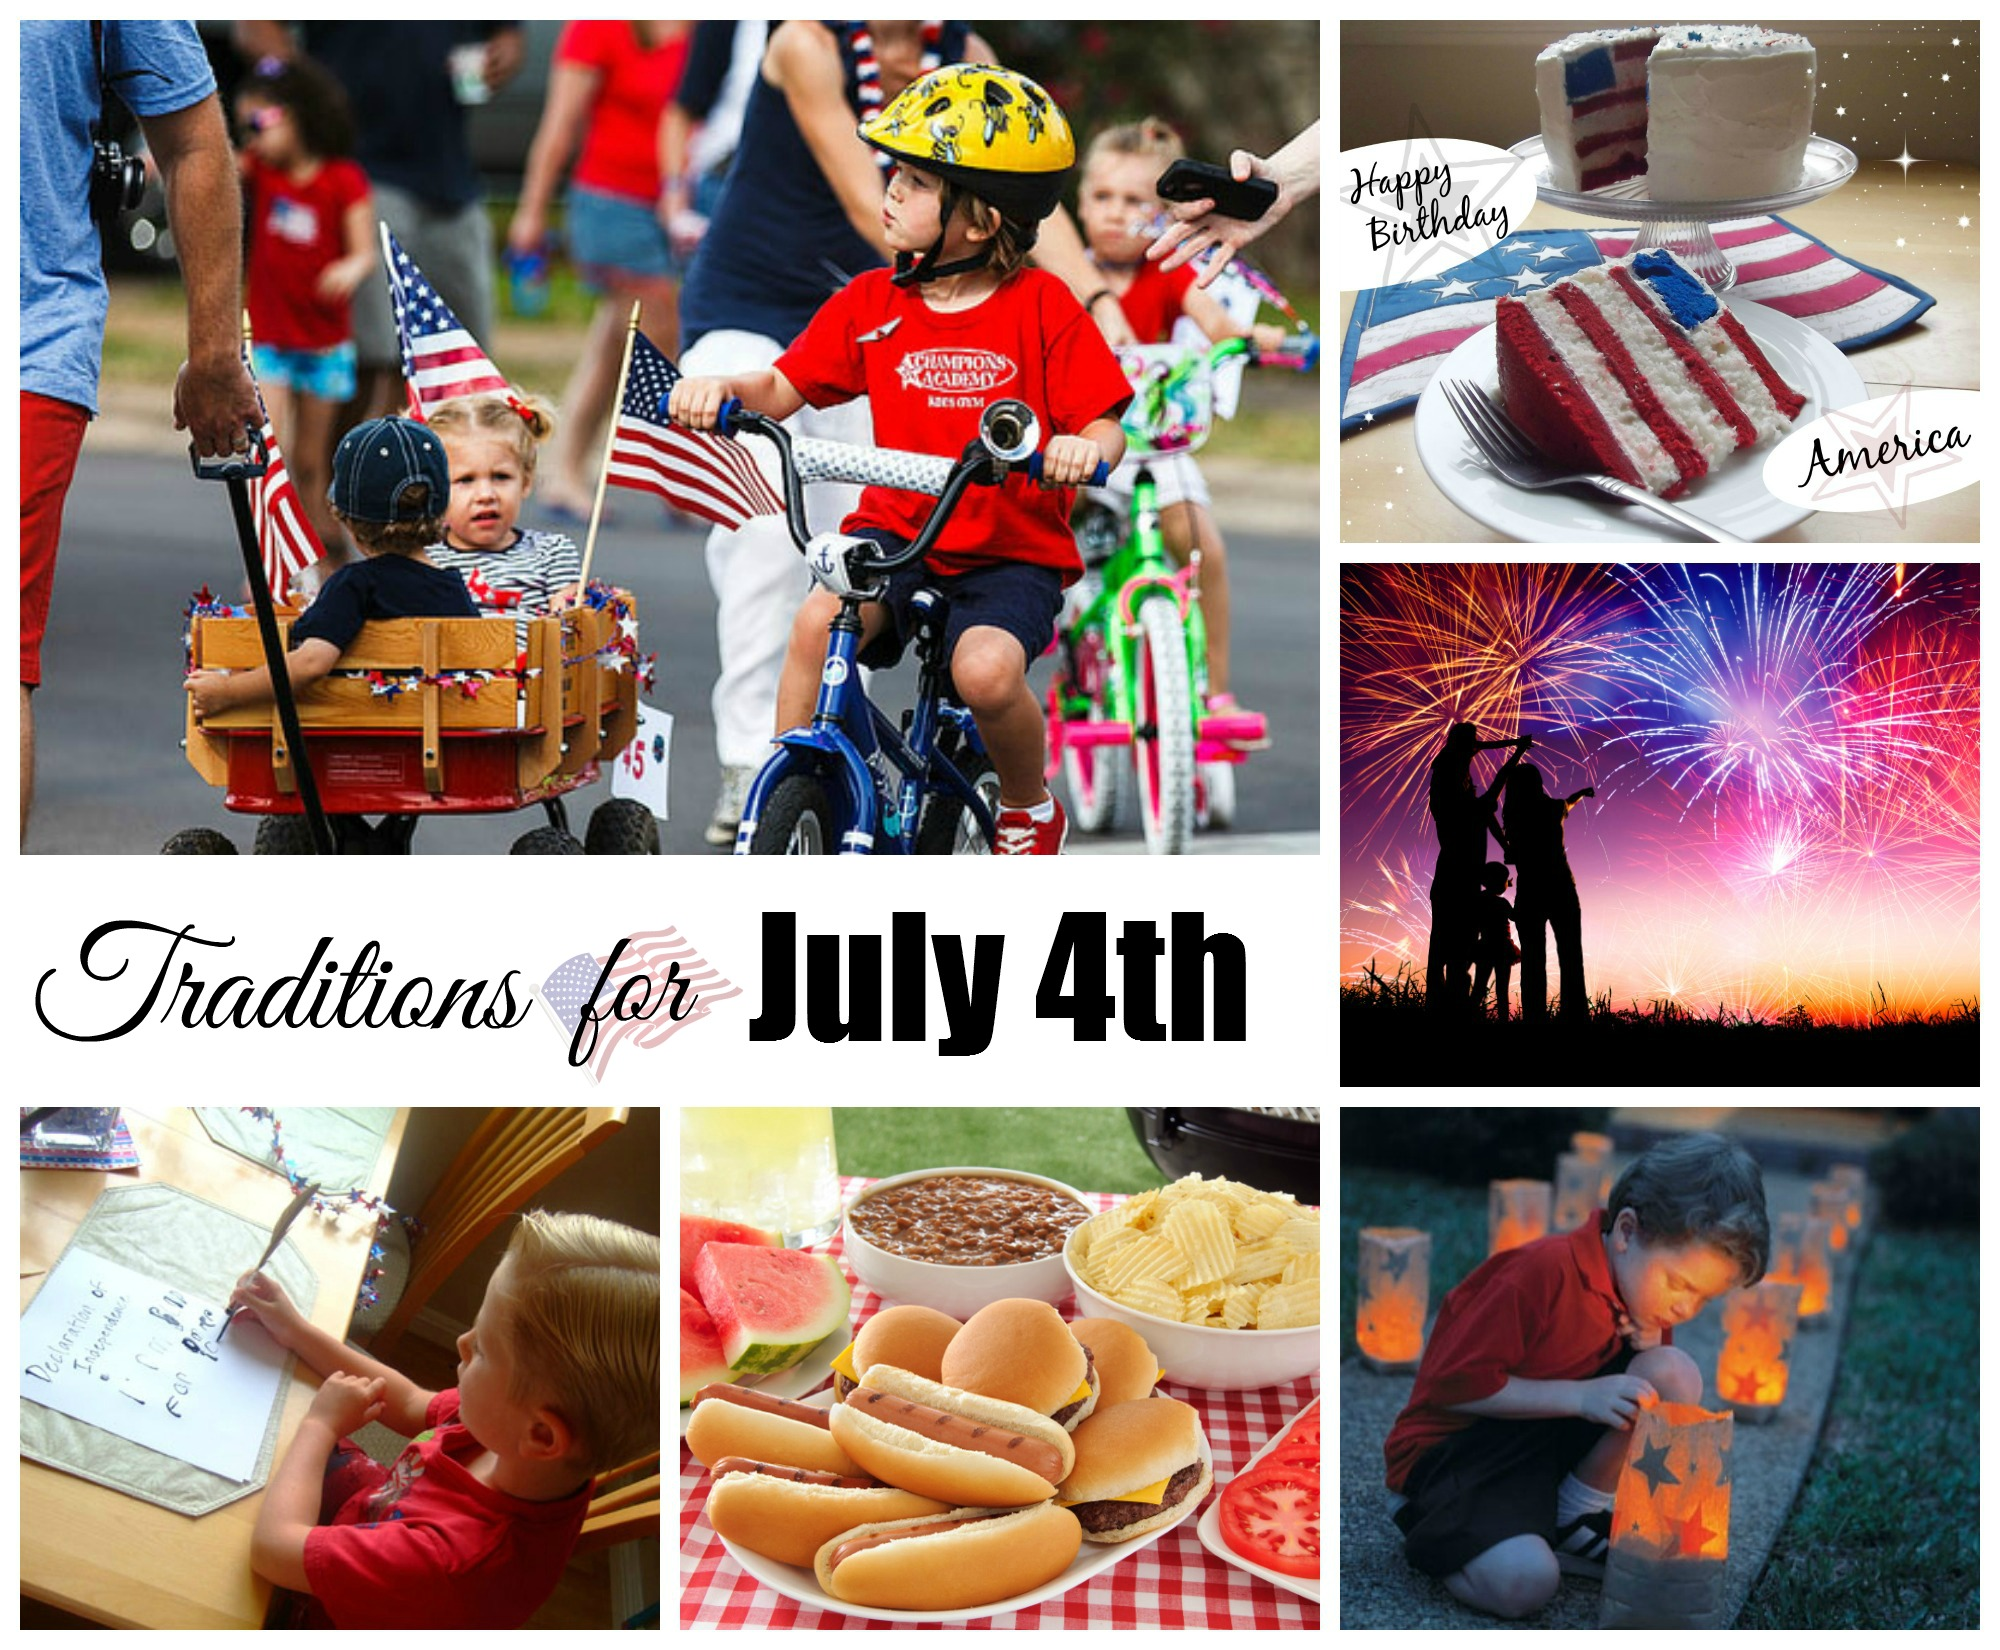 July 4th Traditions Celebrating Holidays